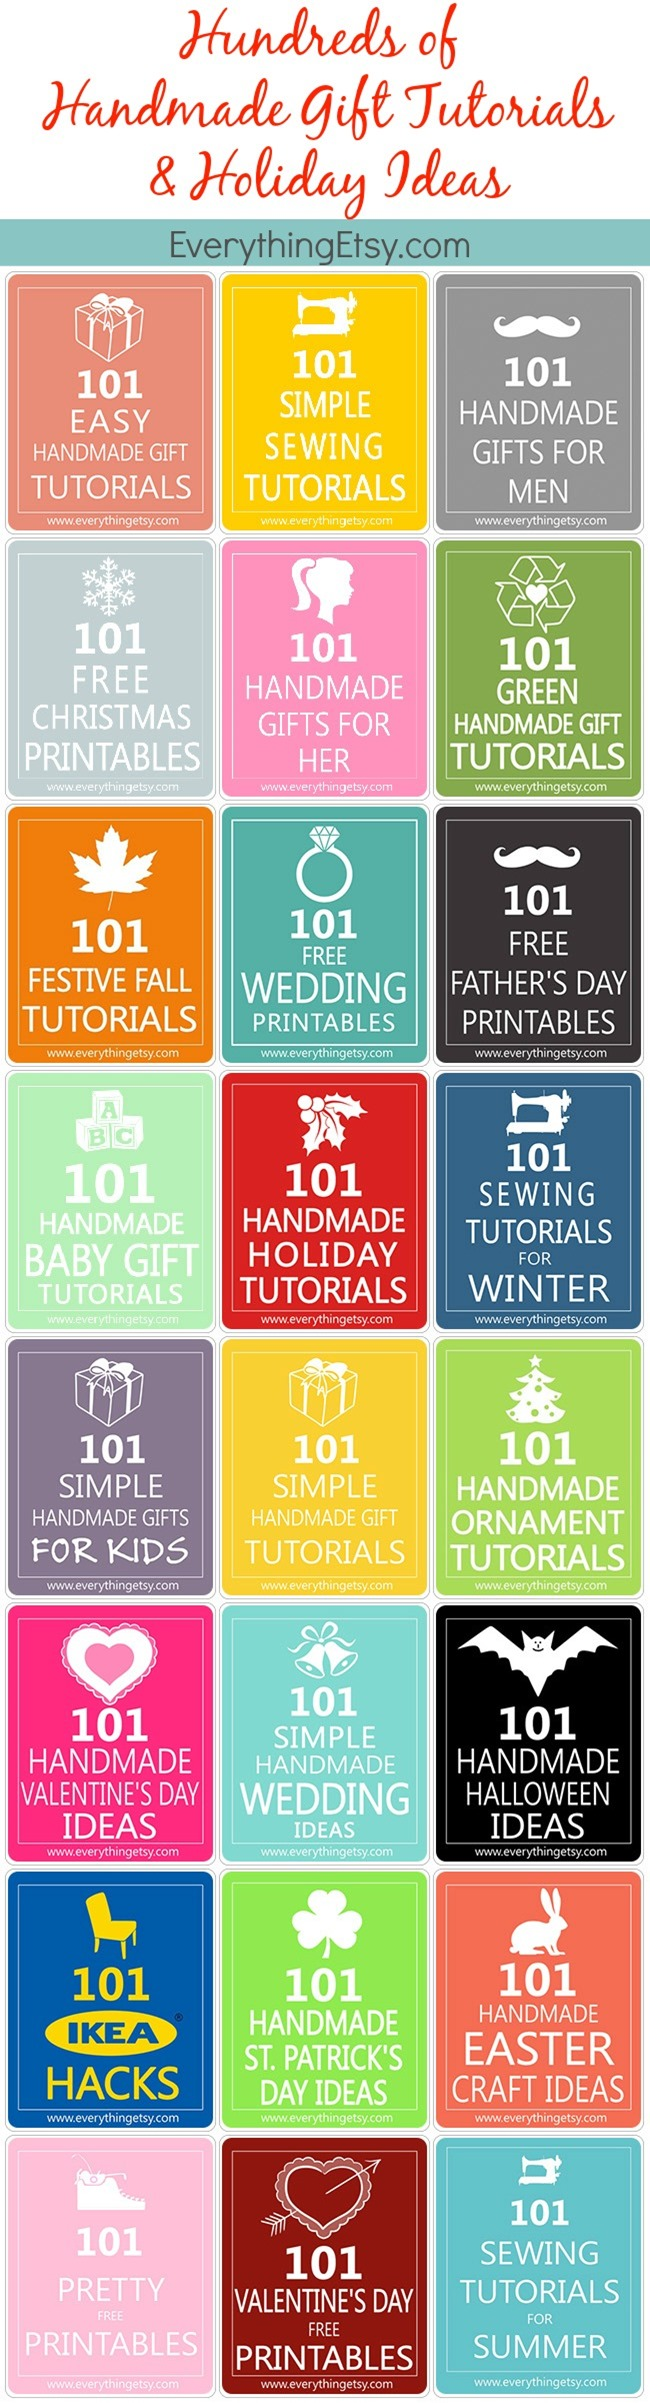 Handmade Gifts Tutorials & Holiday Ideas…Hundreds of Them!